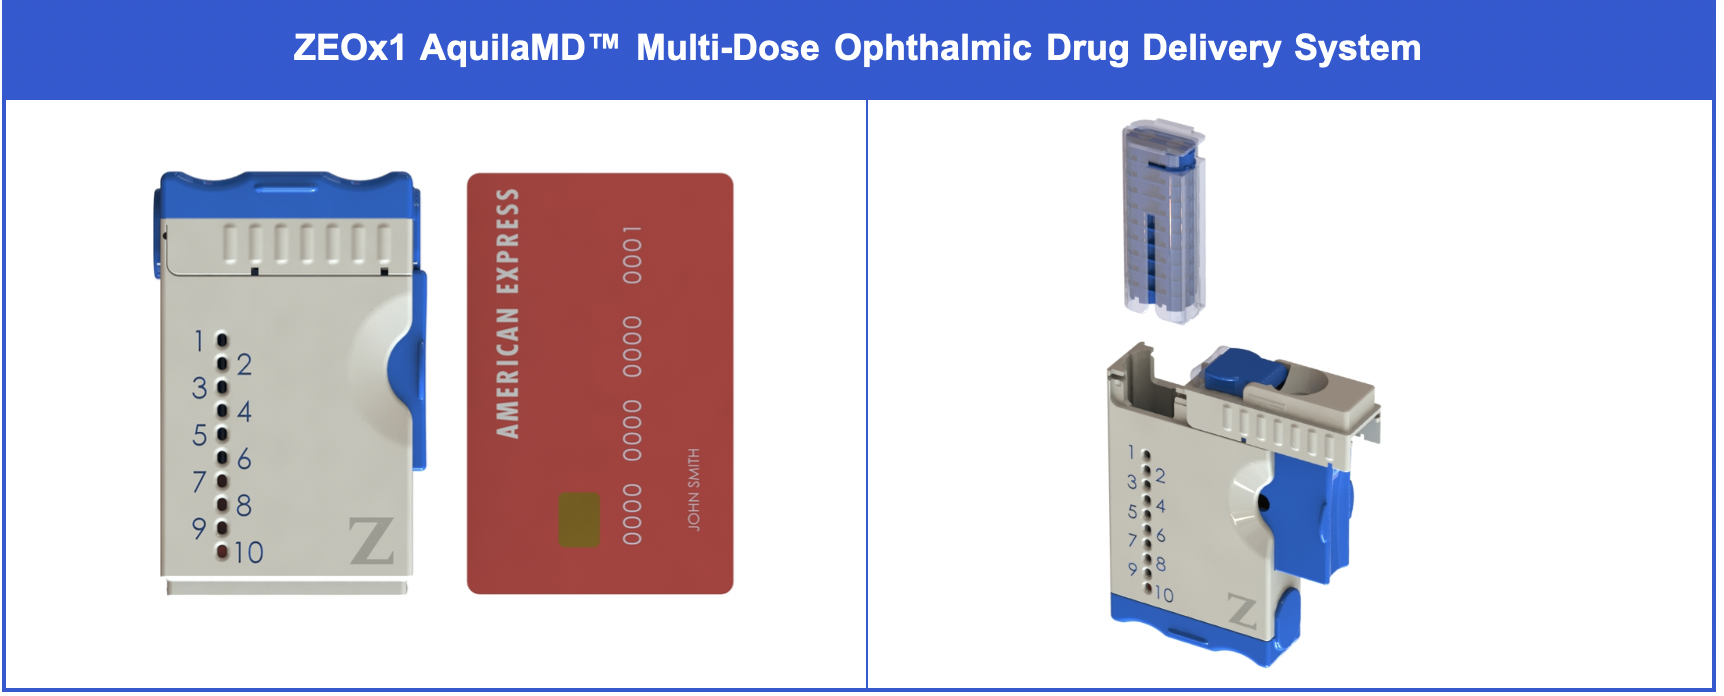 Zeteo Biomedical Introduces ZEOx1 AquilaMD™ Ophthalmic Drug Delivery System